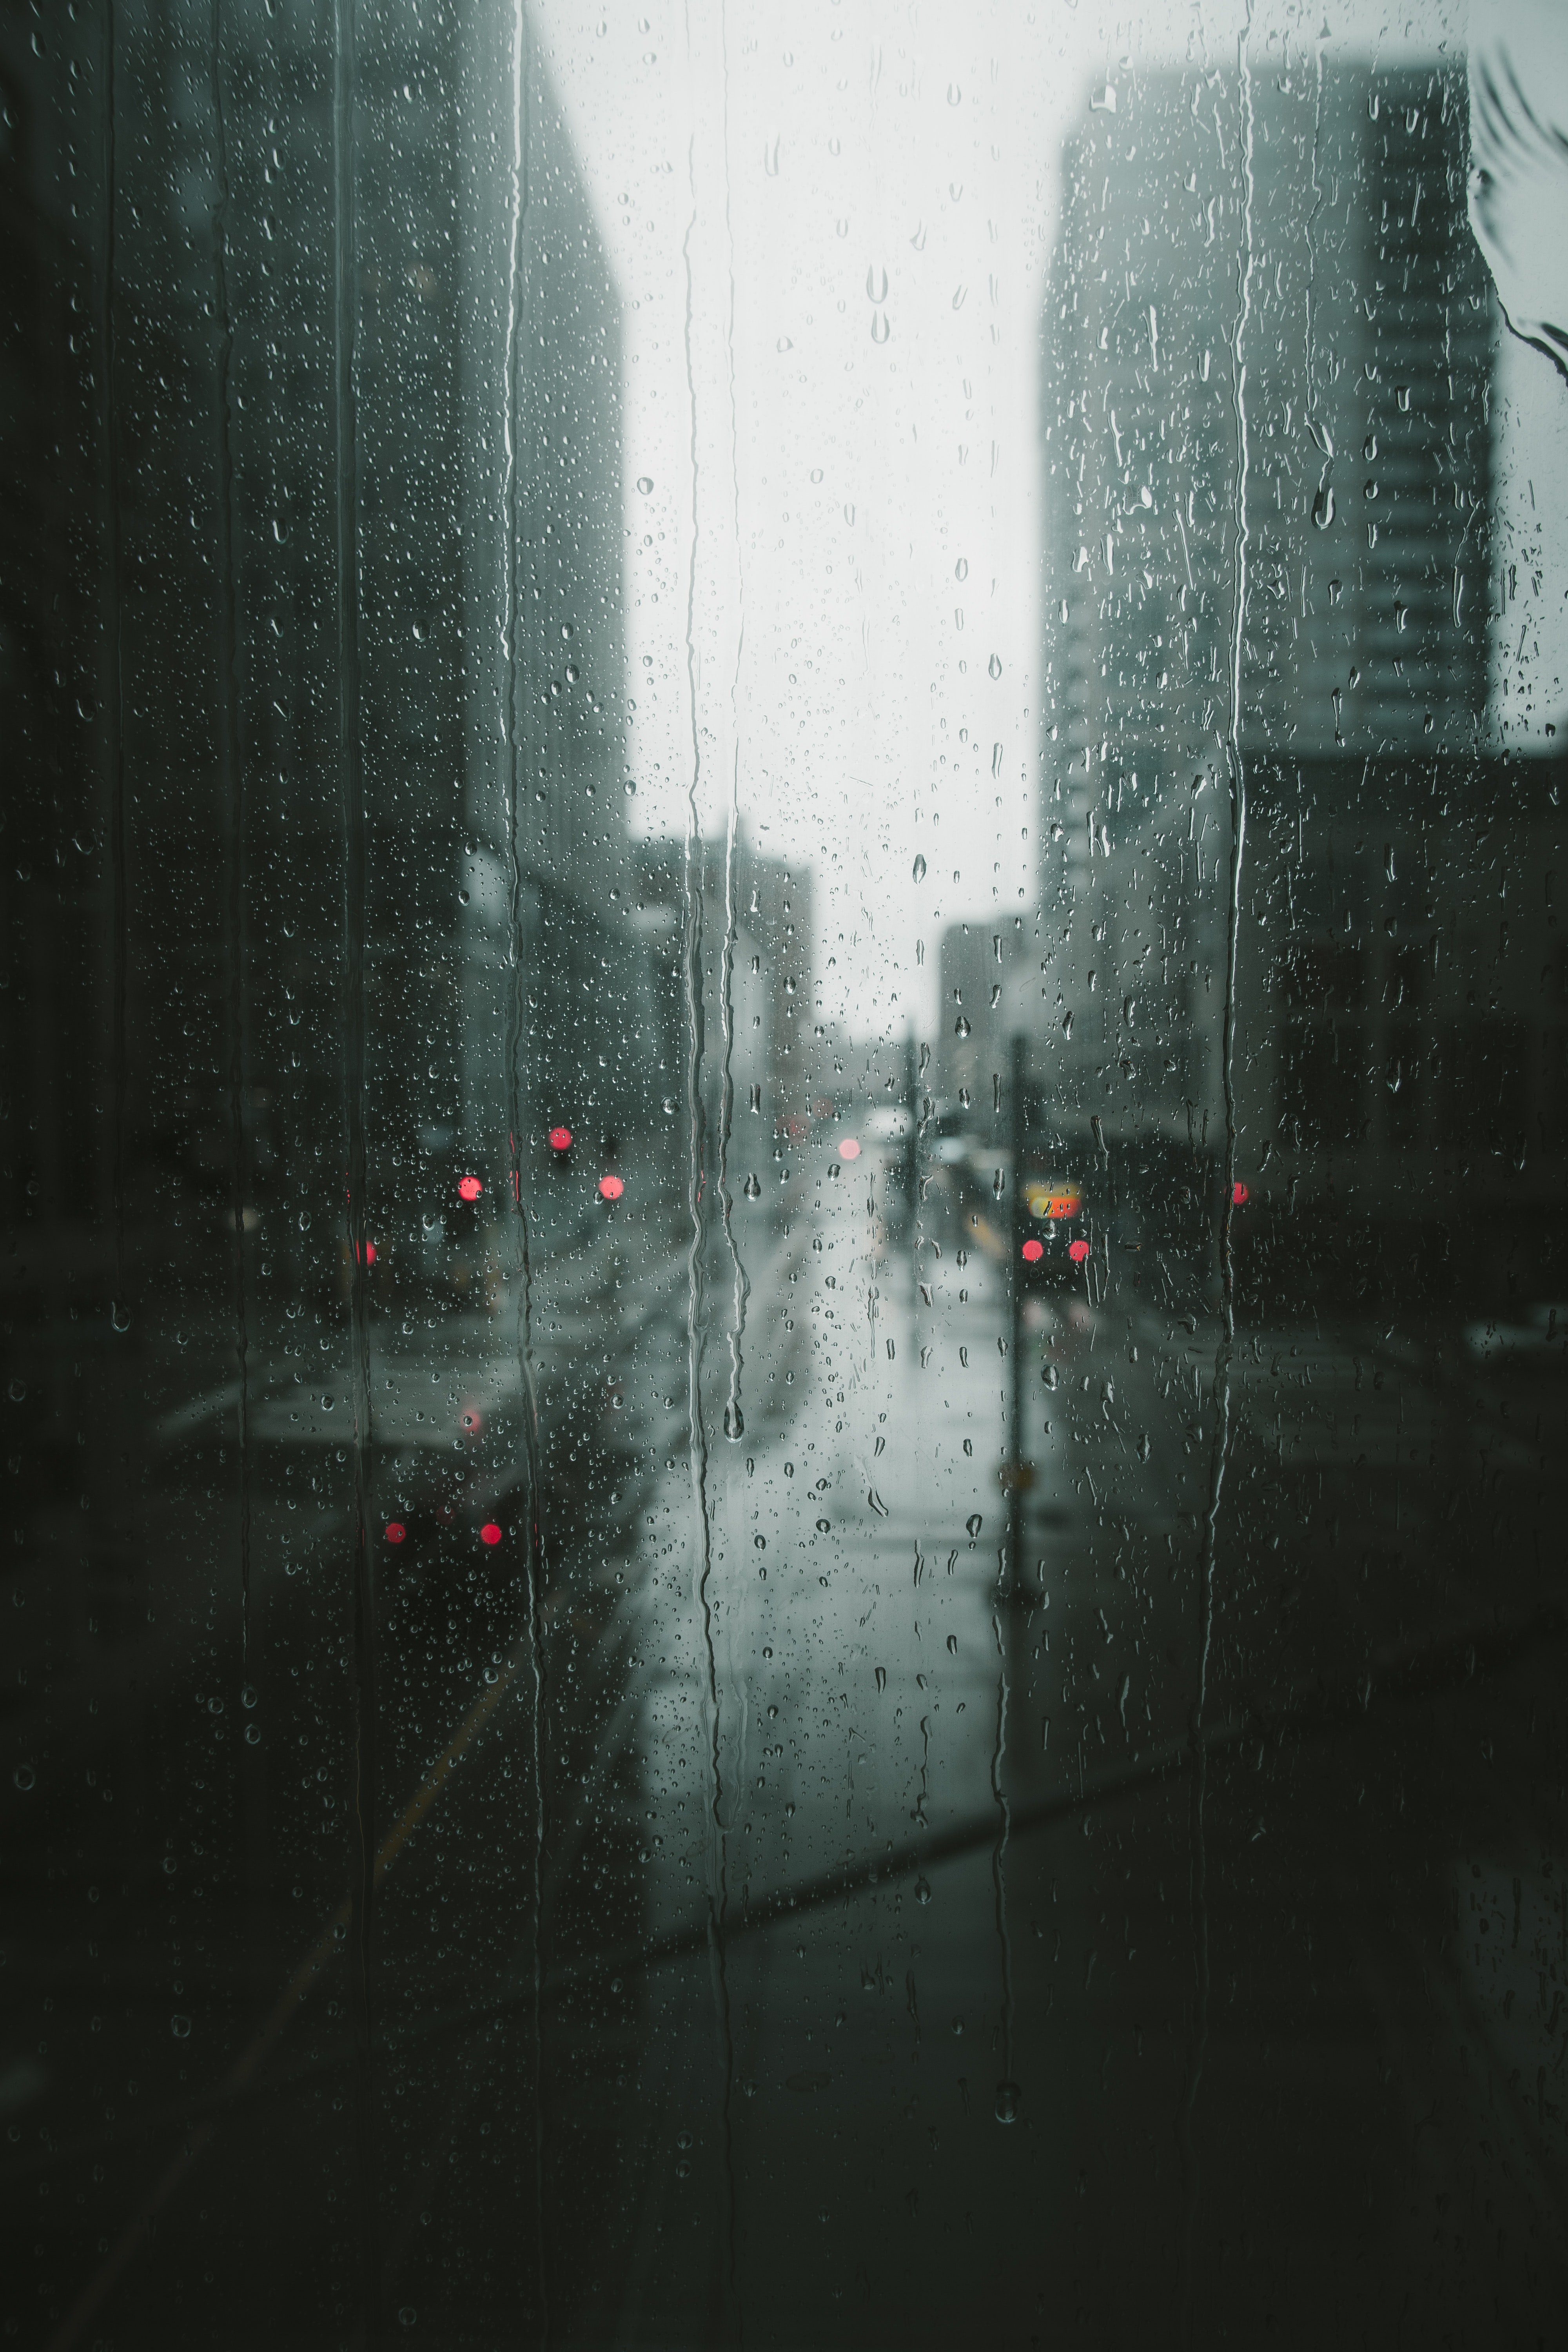 Raining In The City Free Stock Photo